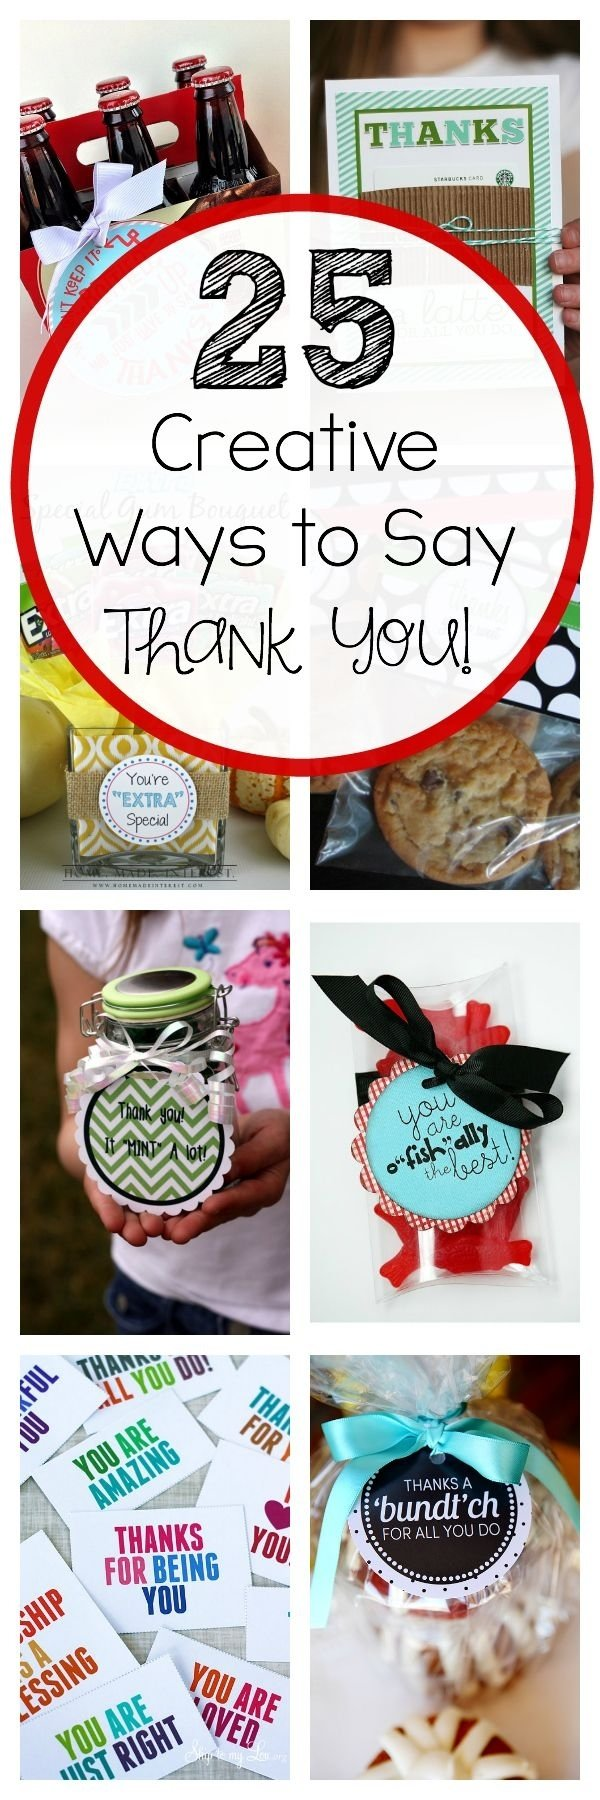 10 Awesome Diy Thank You Gift Ideas 103 best thank you gift ideas images on pinterest teacher 4